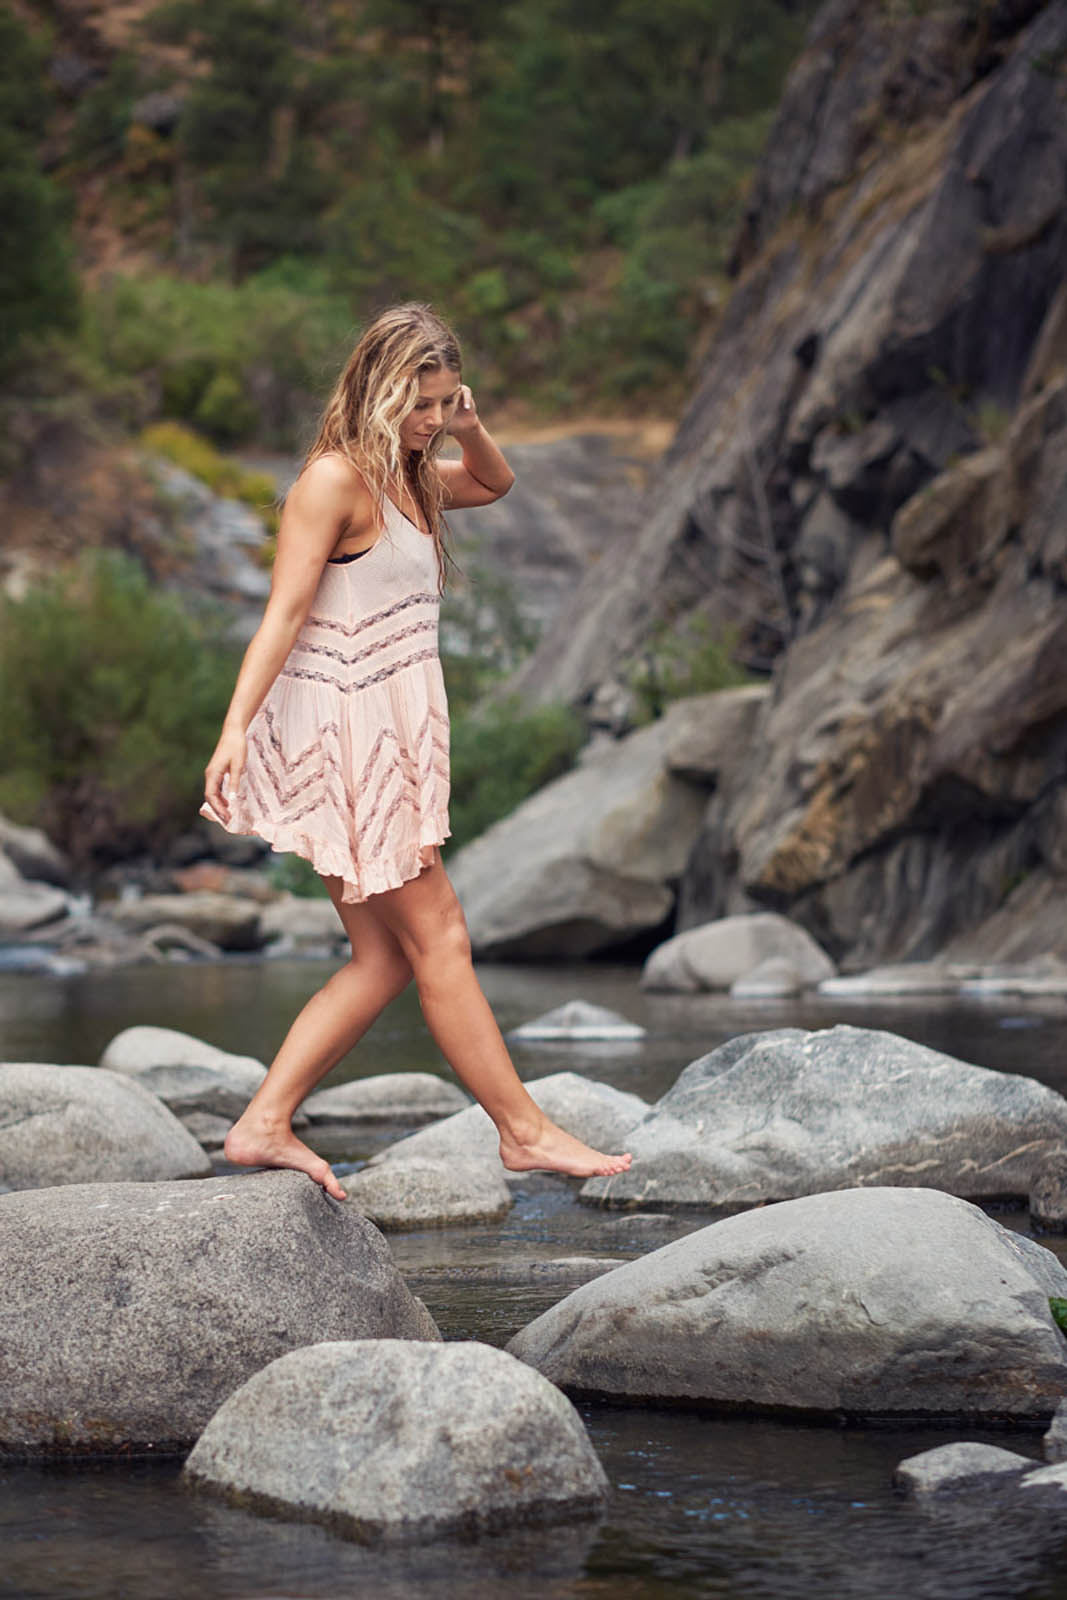 A Barefoot Woman in a Dress Walking Across a Creek.